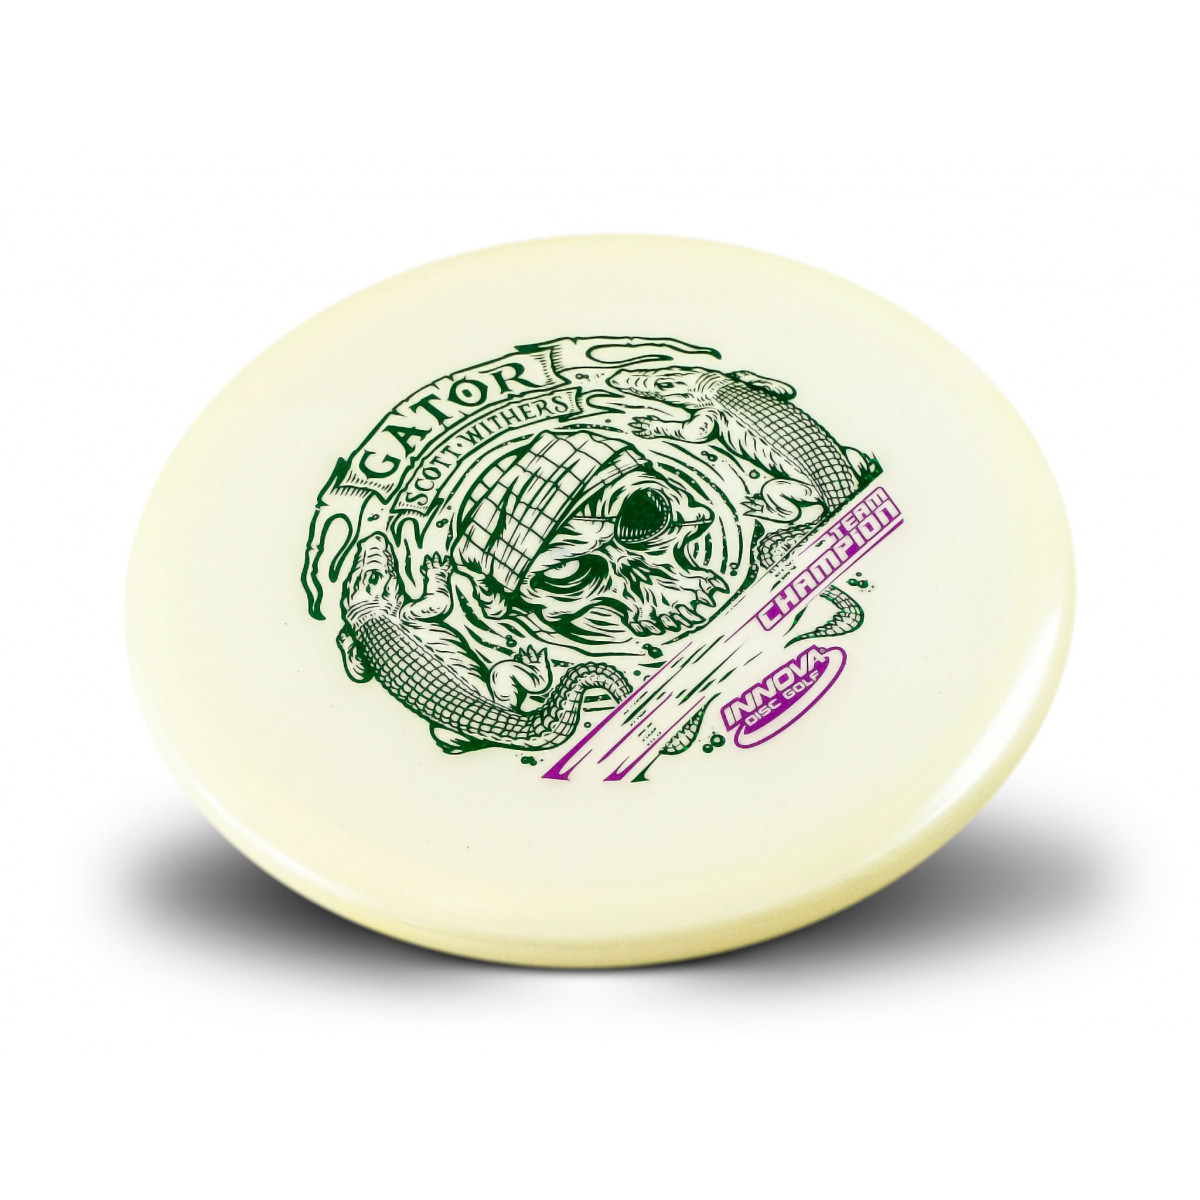 Innova Glow Champion Gator Scott Withers Tour Series